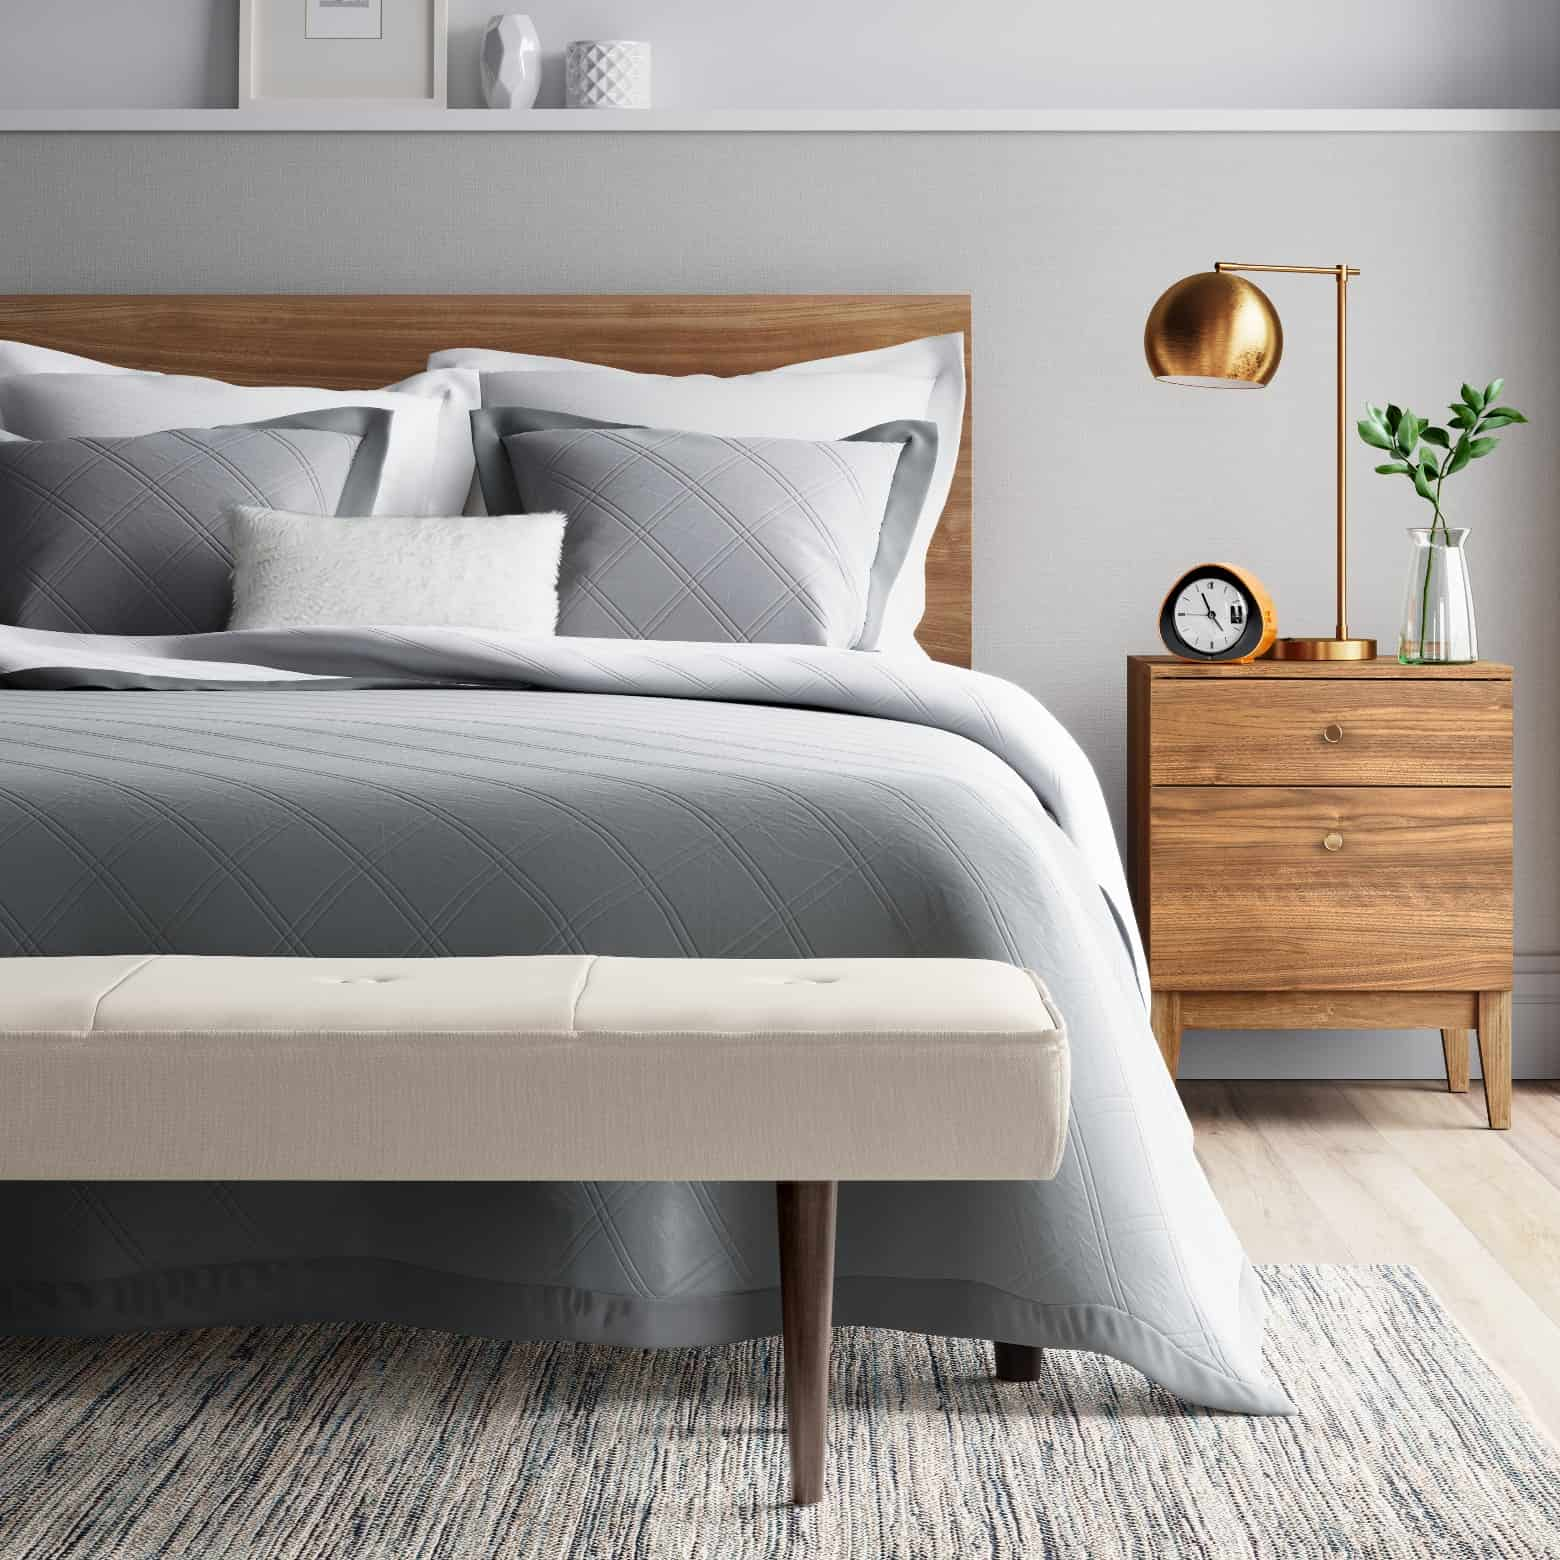 Target Home Furnishings: My Favorite Modern Home Decor From Target